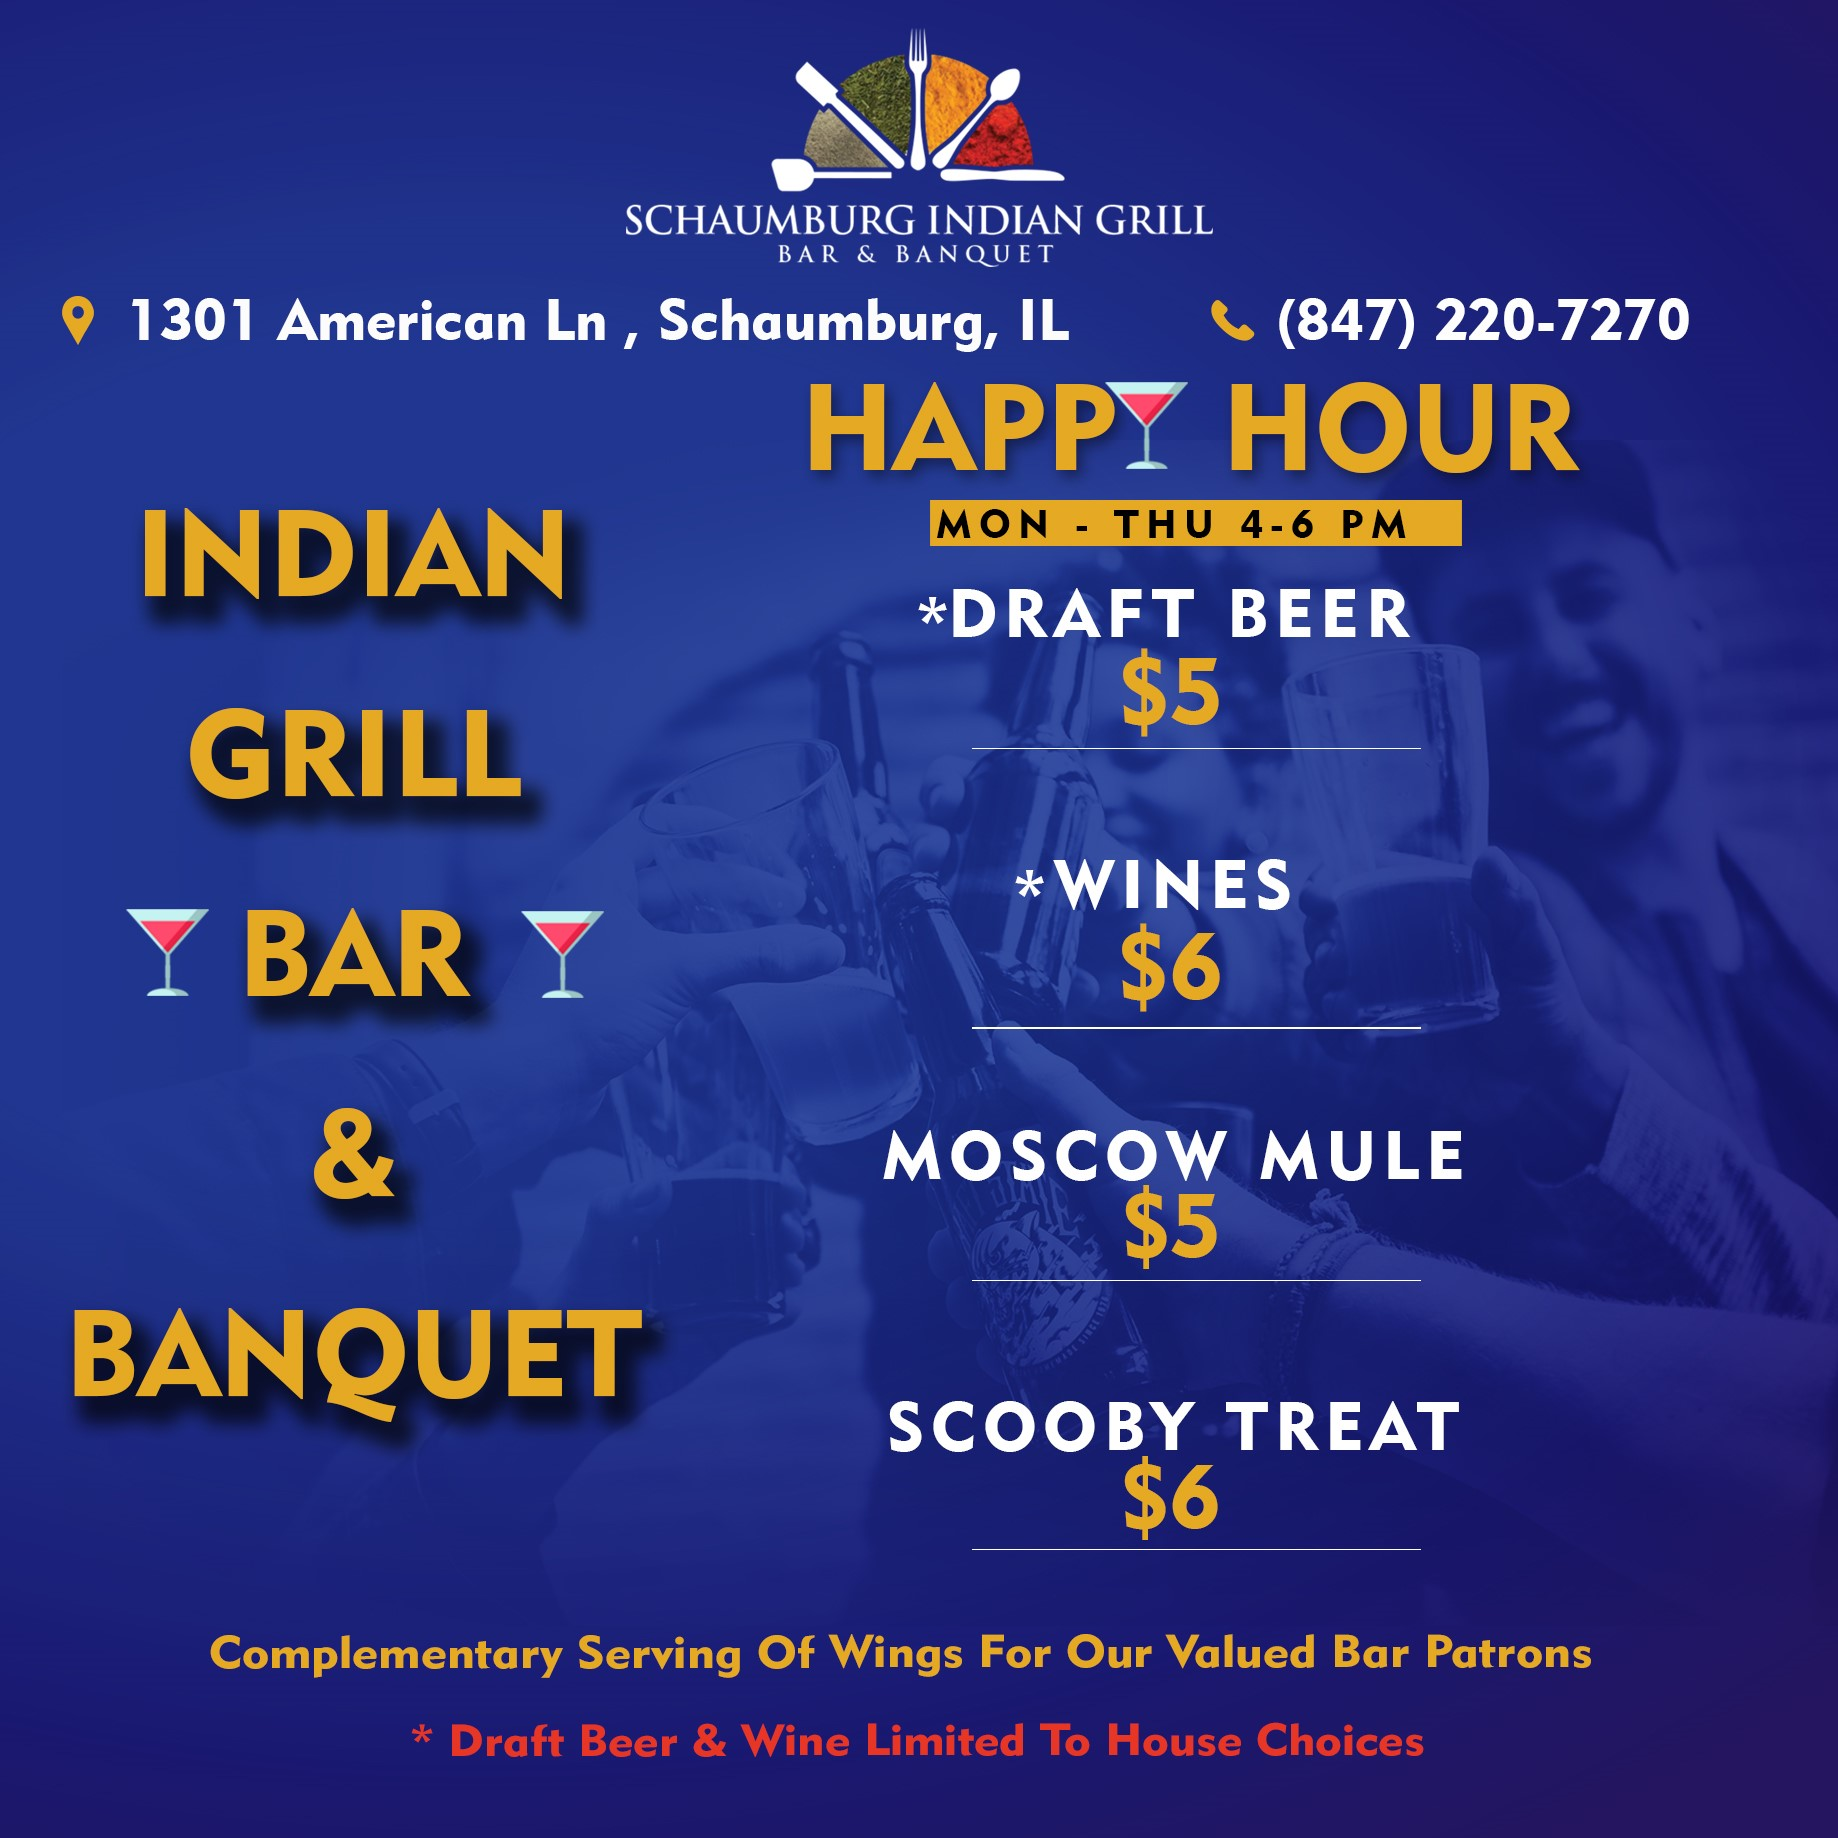 DON'T MISS HAPPY HOUR!